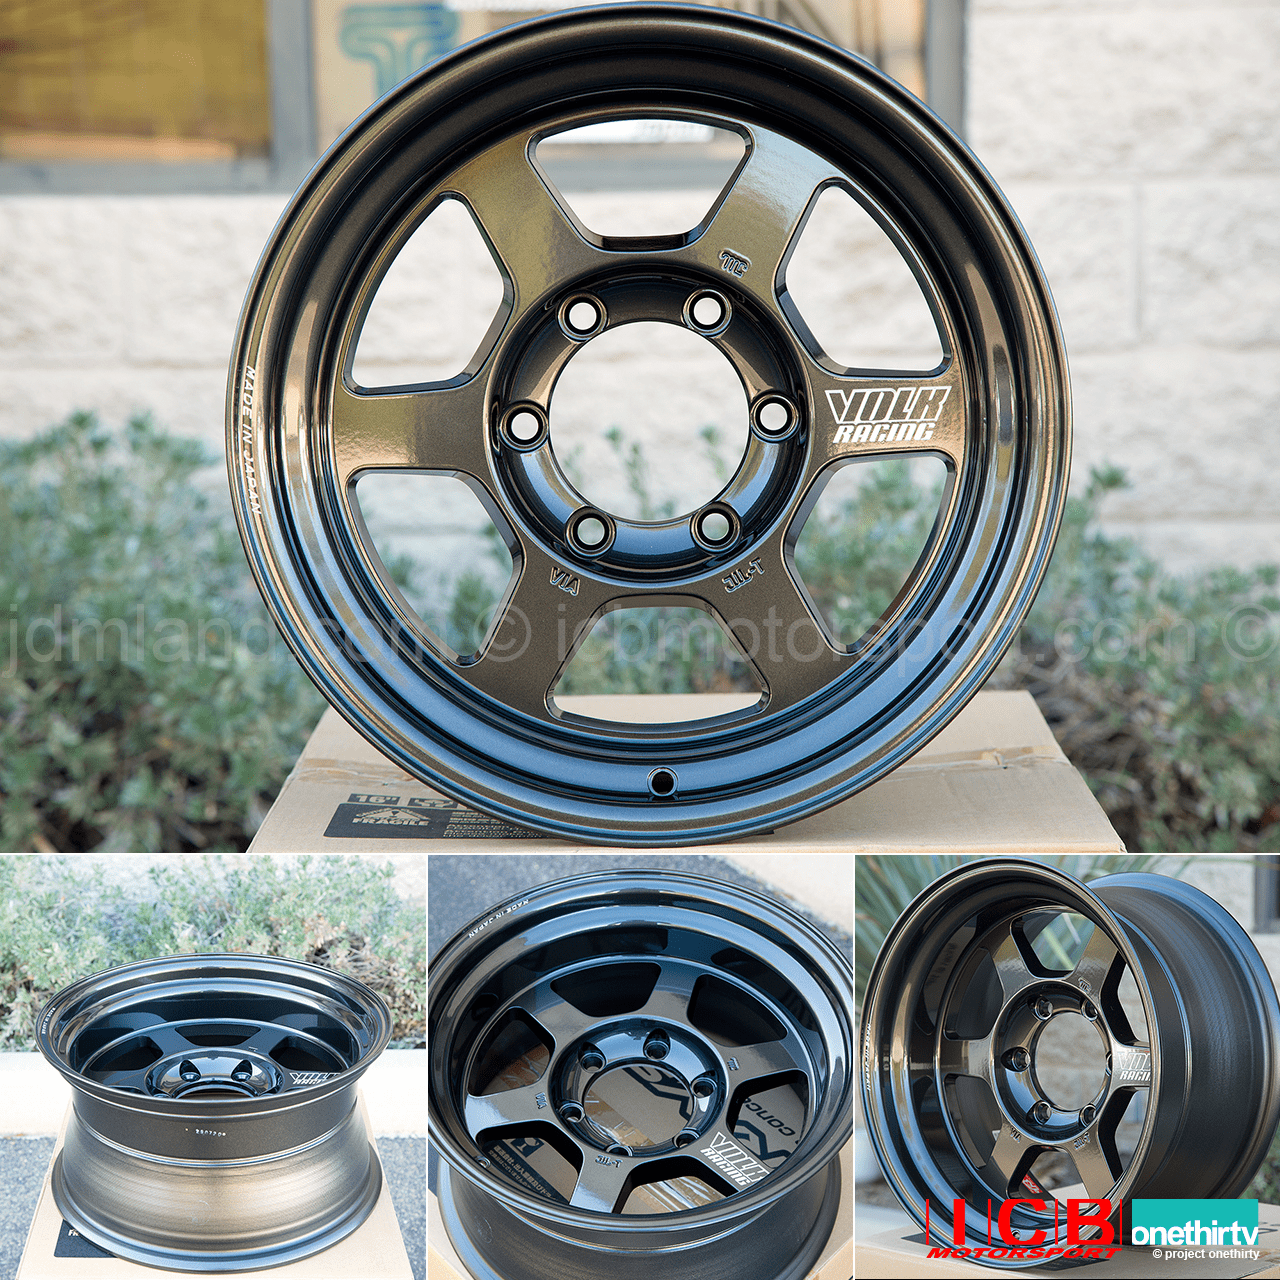 Rays Volk Racing TE37X Wheels 16X8 6X139.7 -20 Offset Diamond Black Large P.C.D. Progressive Model FREE SHIPPING Pre-Order